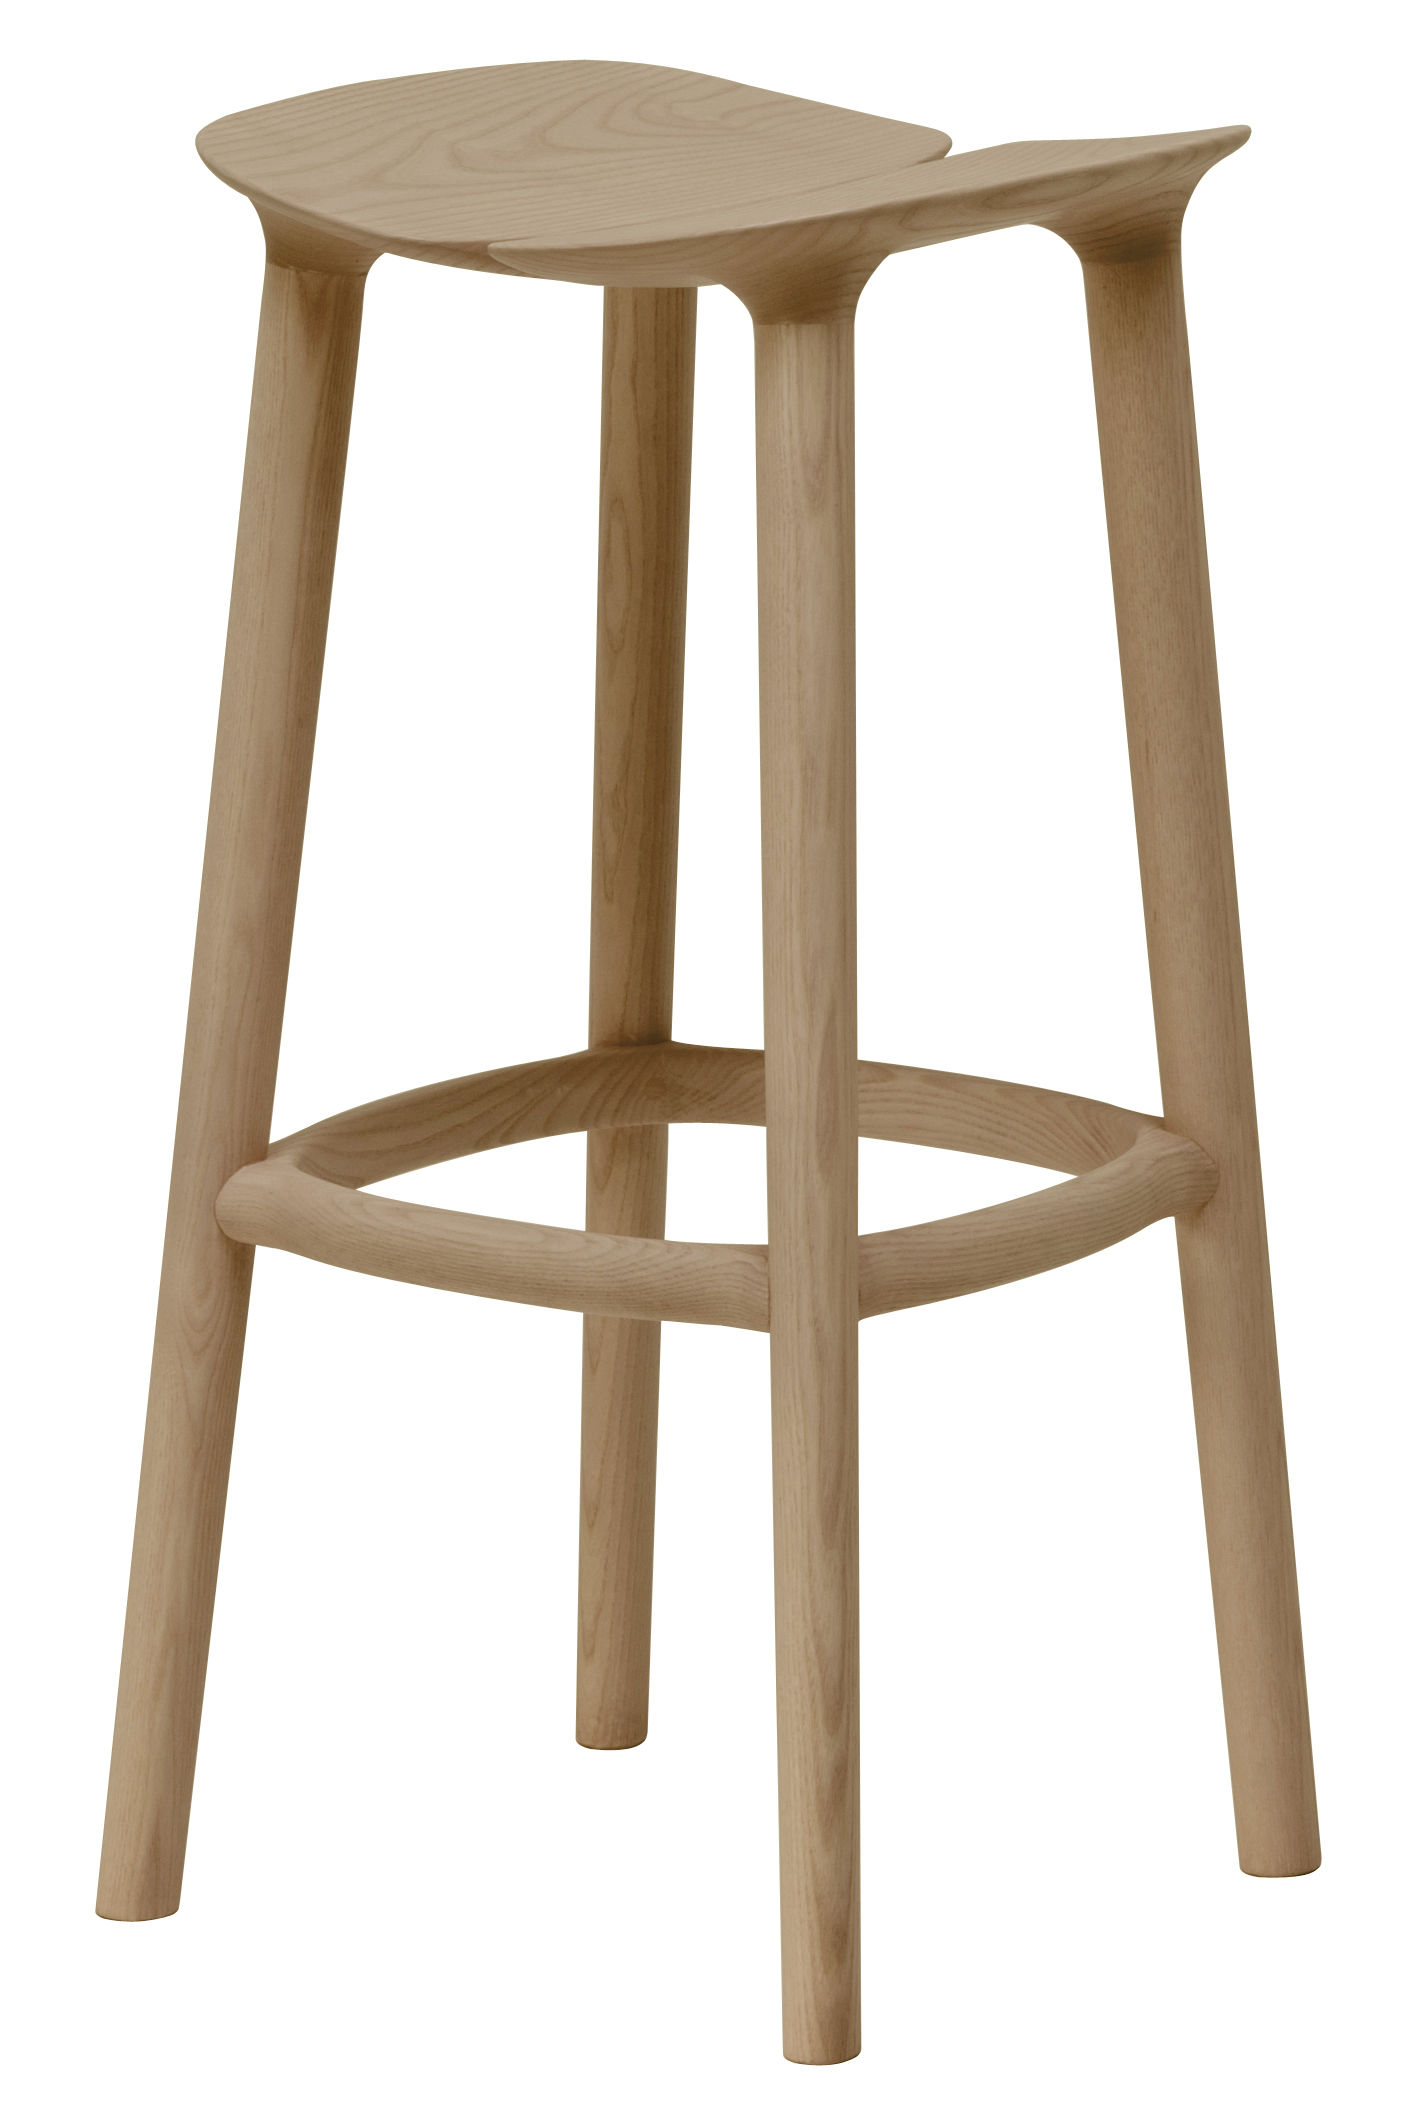 Osso bar stool h 75 cm wood natural oak by mattiazzi for Chaise 64 cm